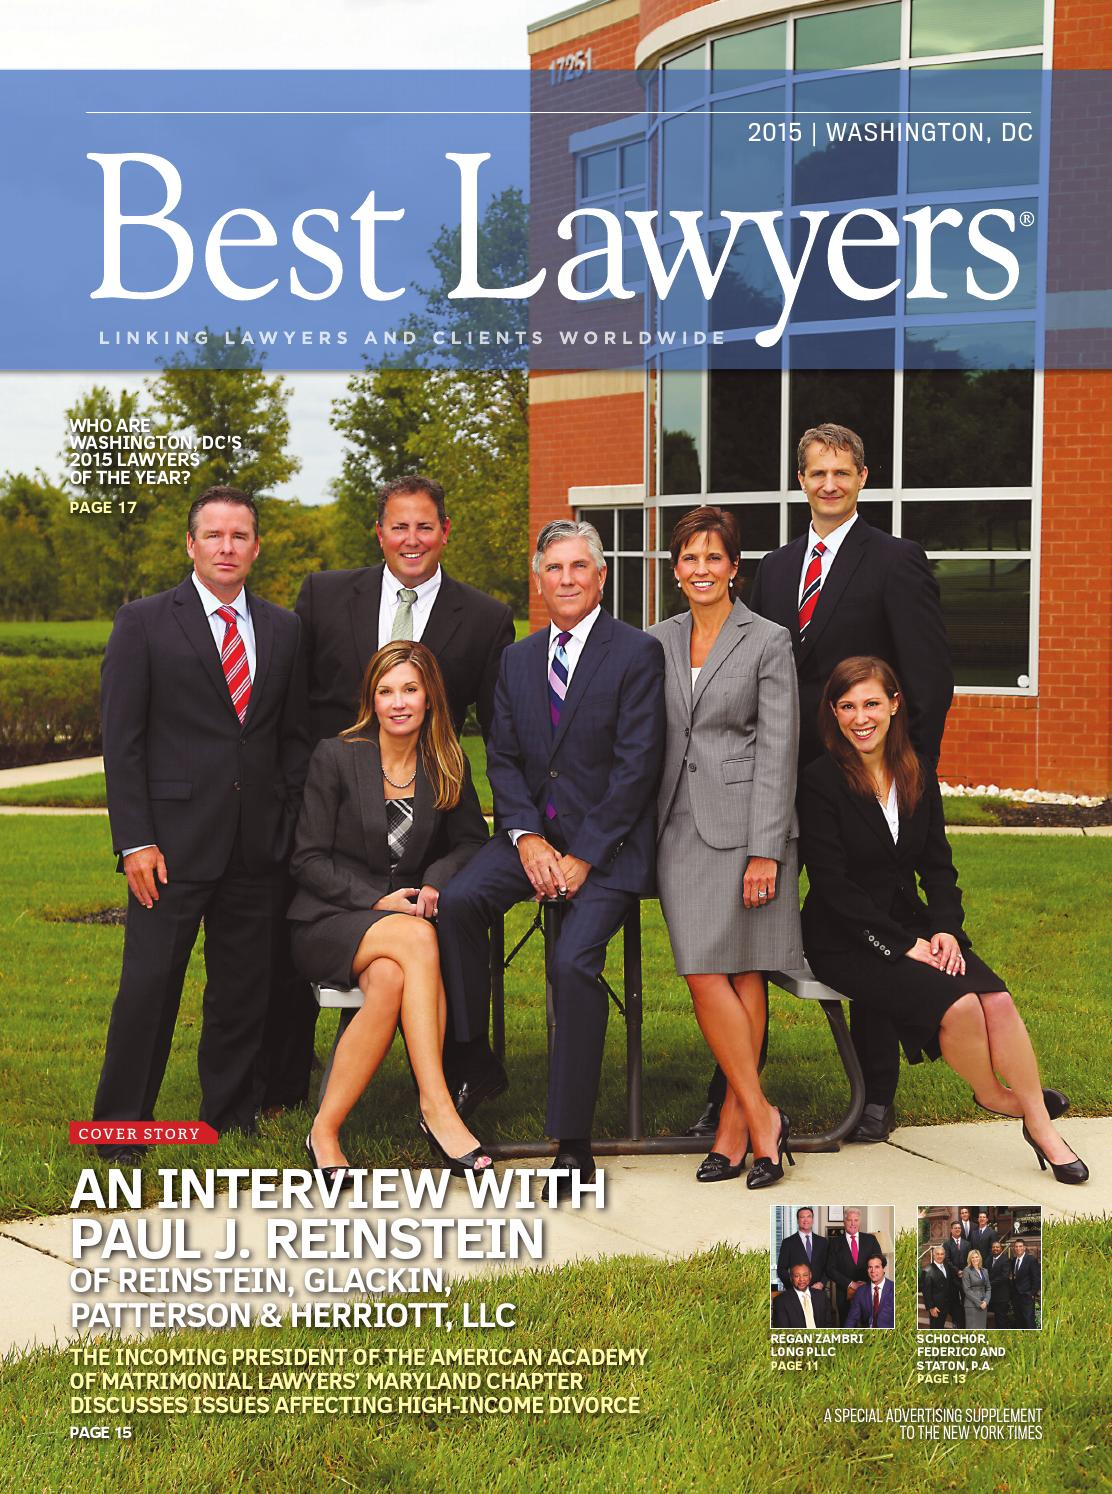 Best Lawyers In Washington Dc 2015 By Best Lawyers Issuu